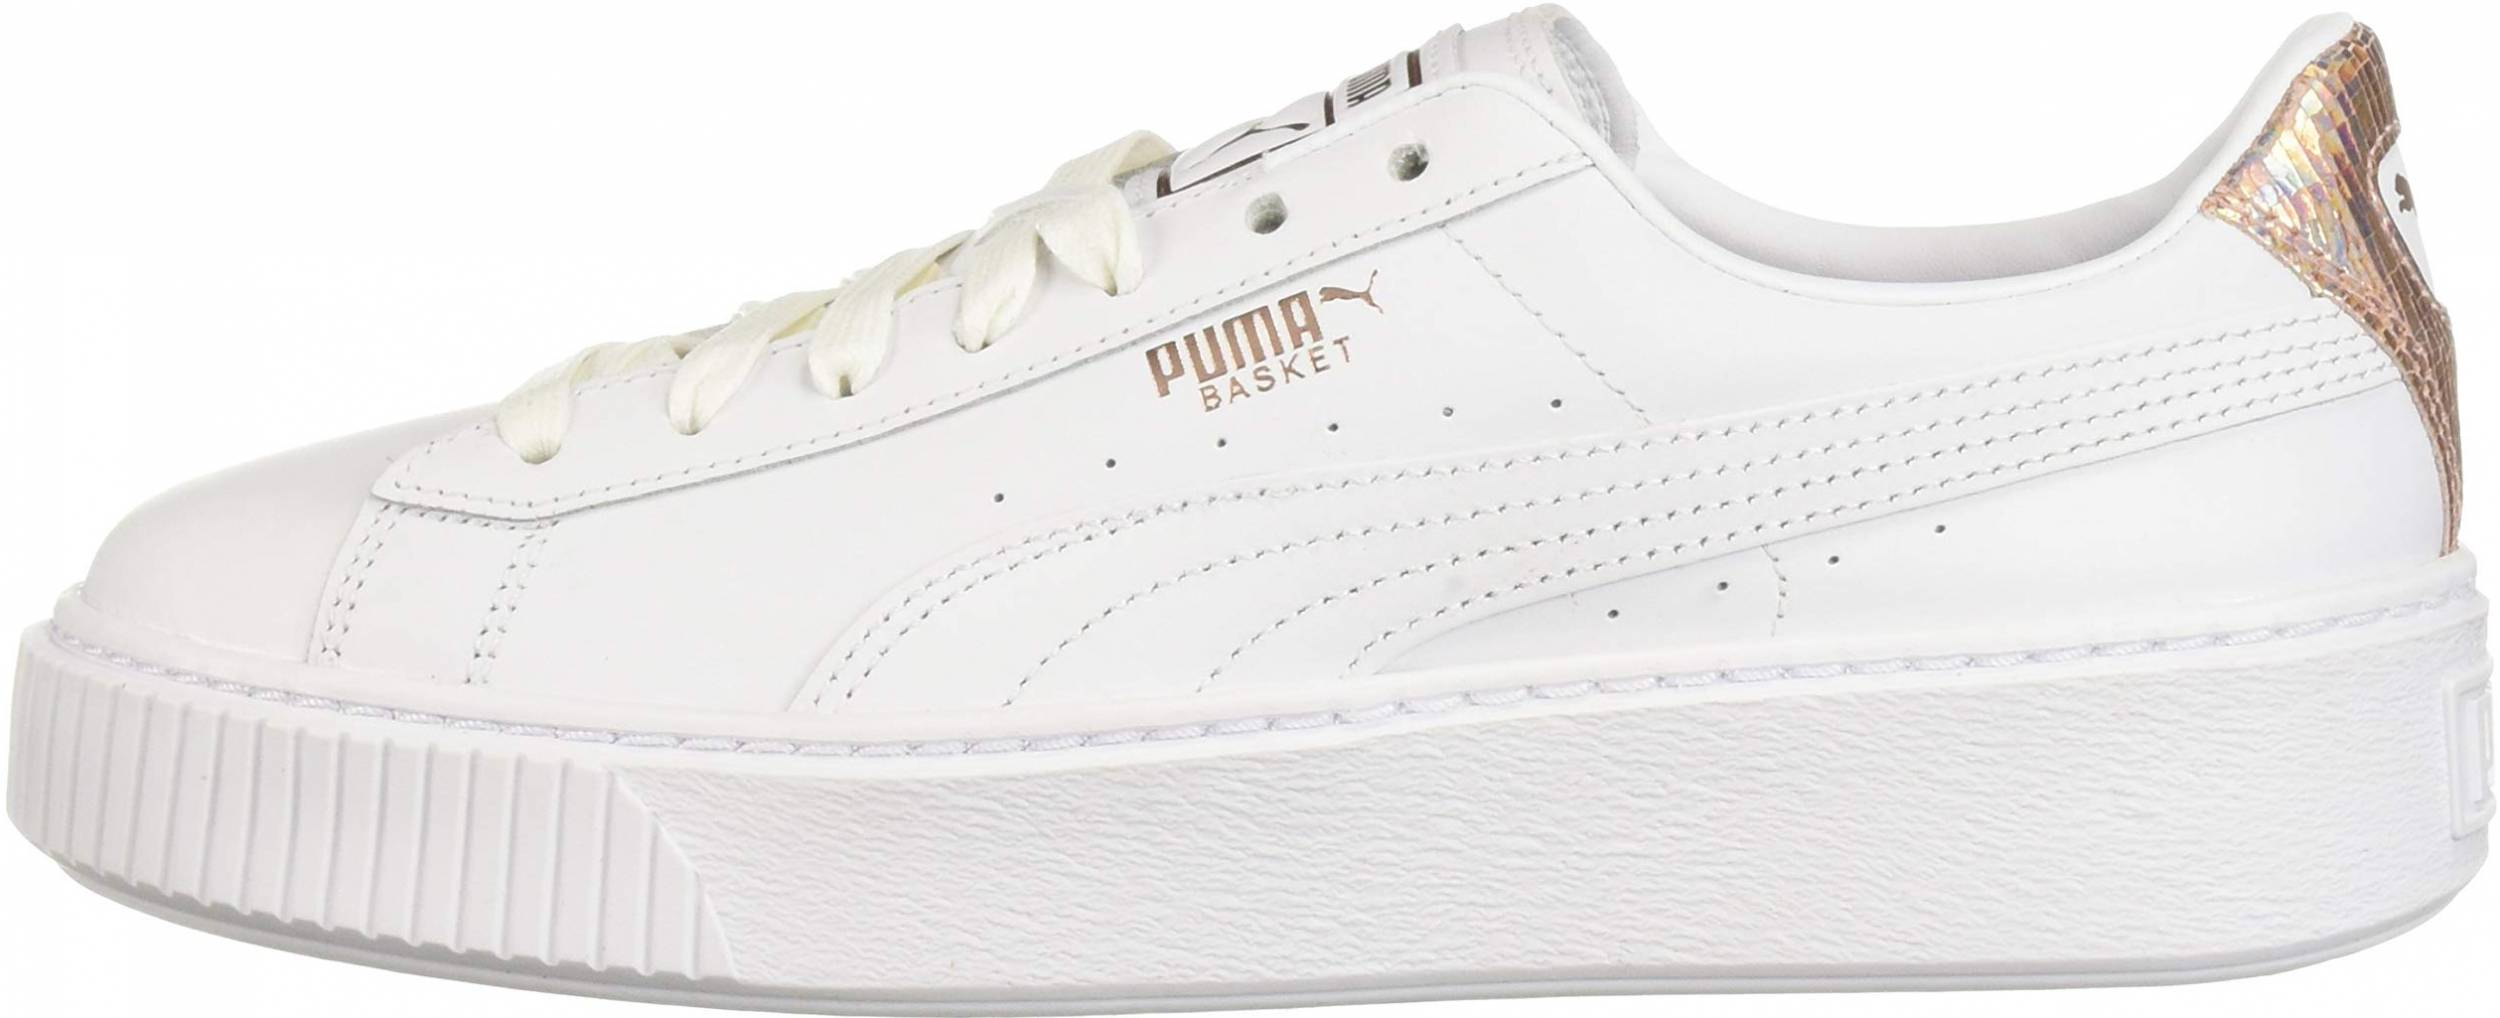 enfermo Empírico Caracterizar  Puma Basket Platform sneakers in white (only $35) | RunRepeat